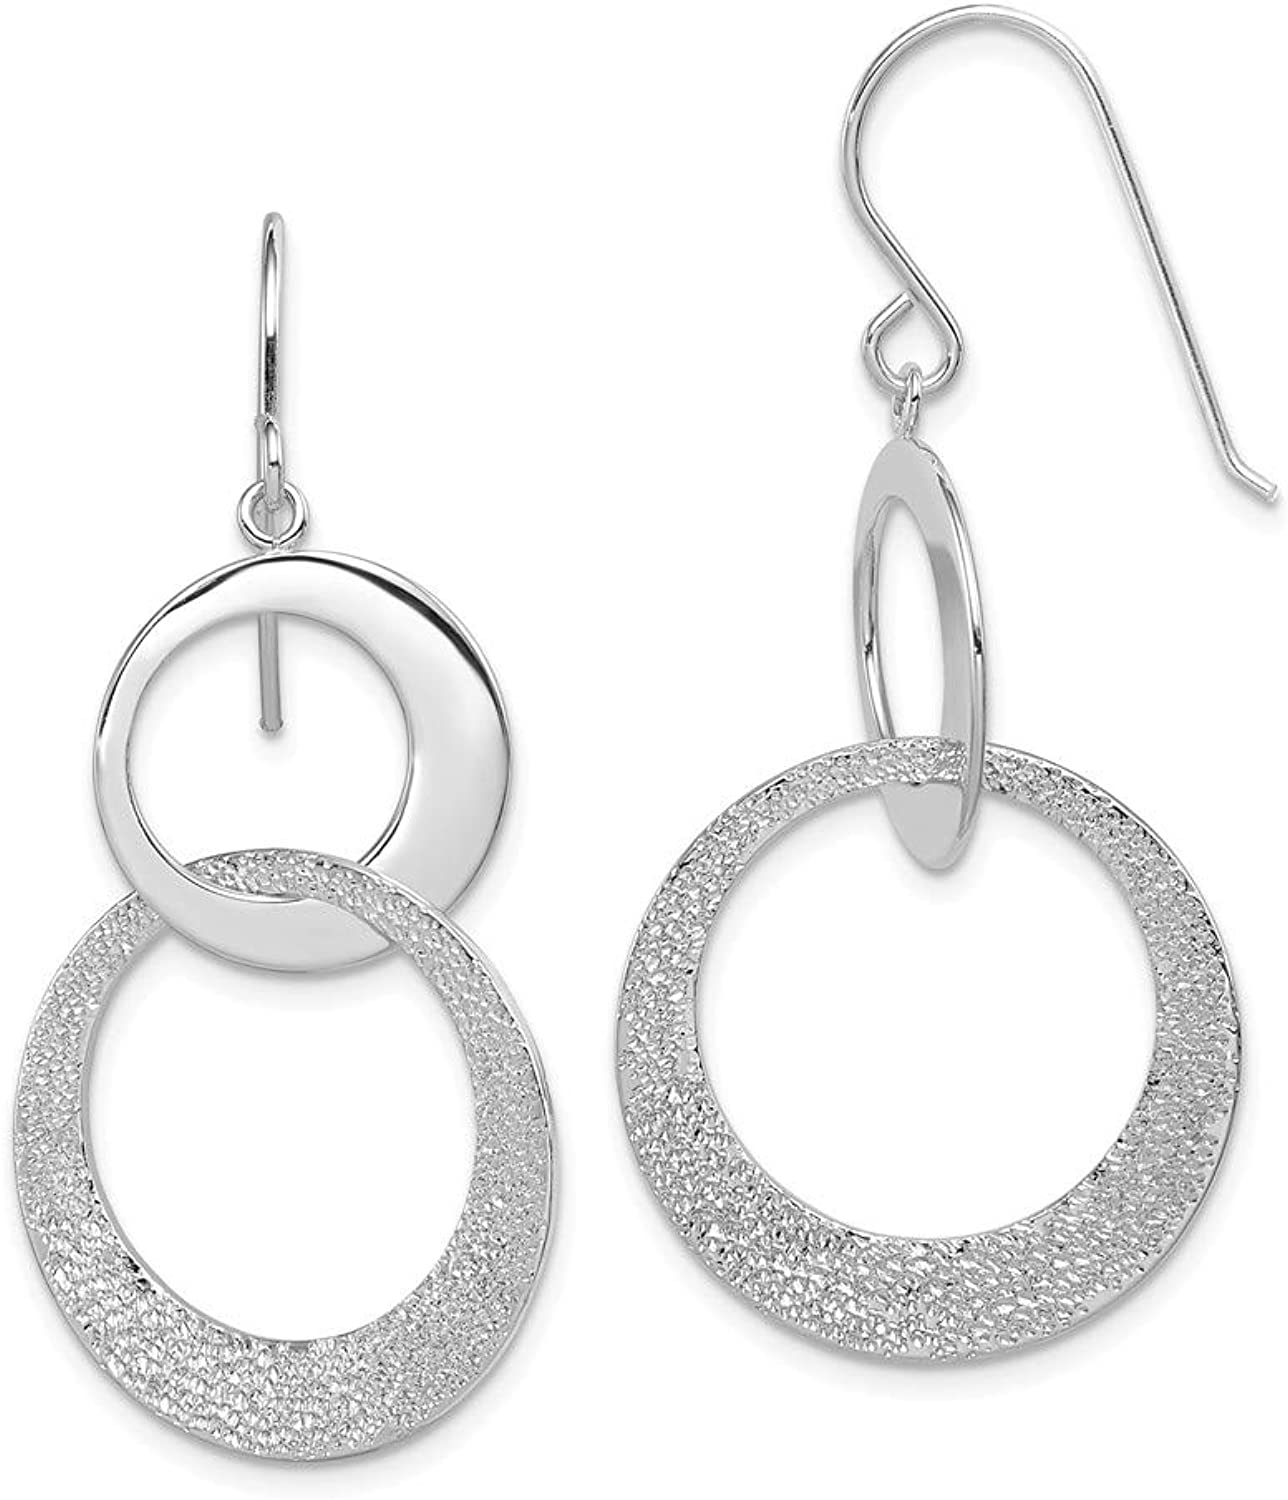 Beautiful Sterling silver 925 sterling Sterling Silver Textured & Polished Interlocking Circles Earrings